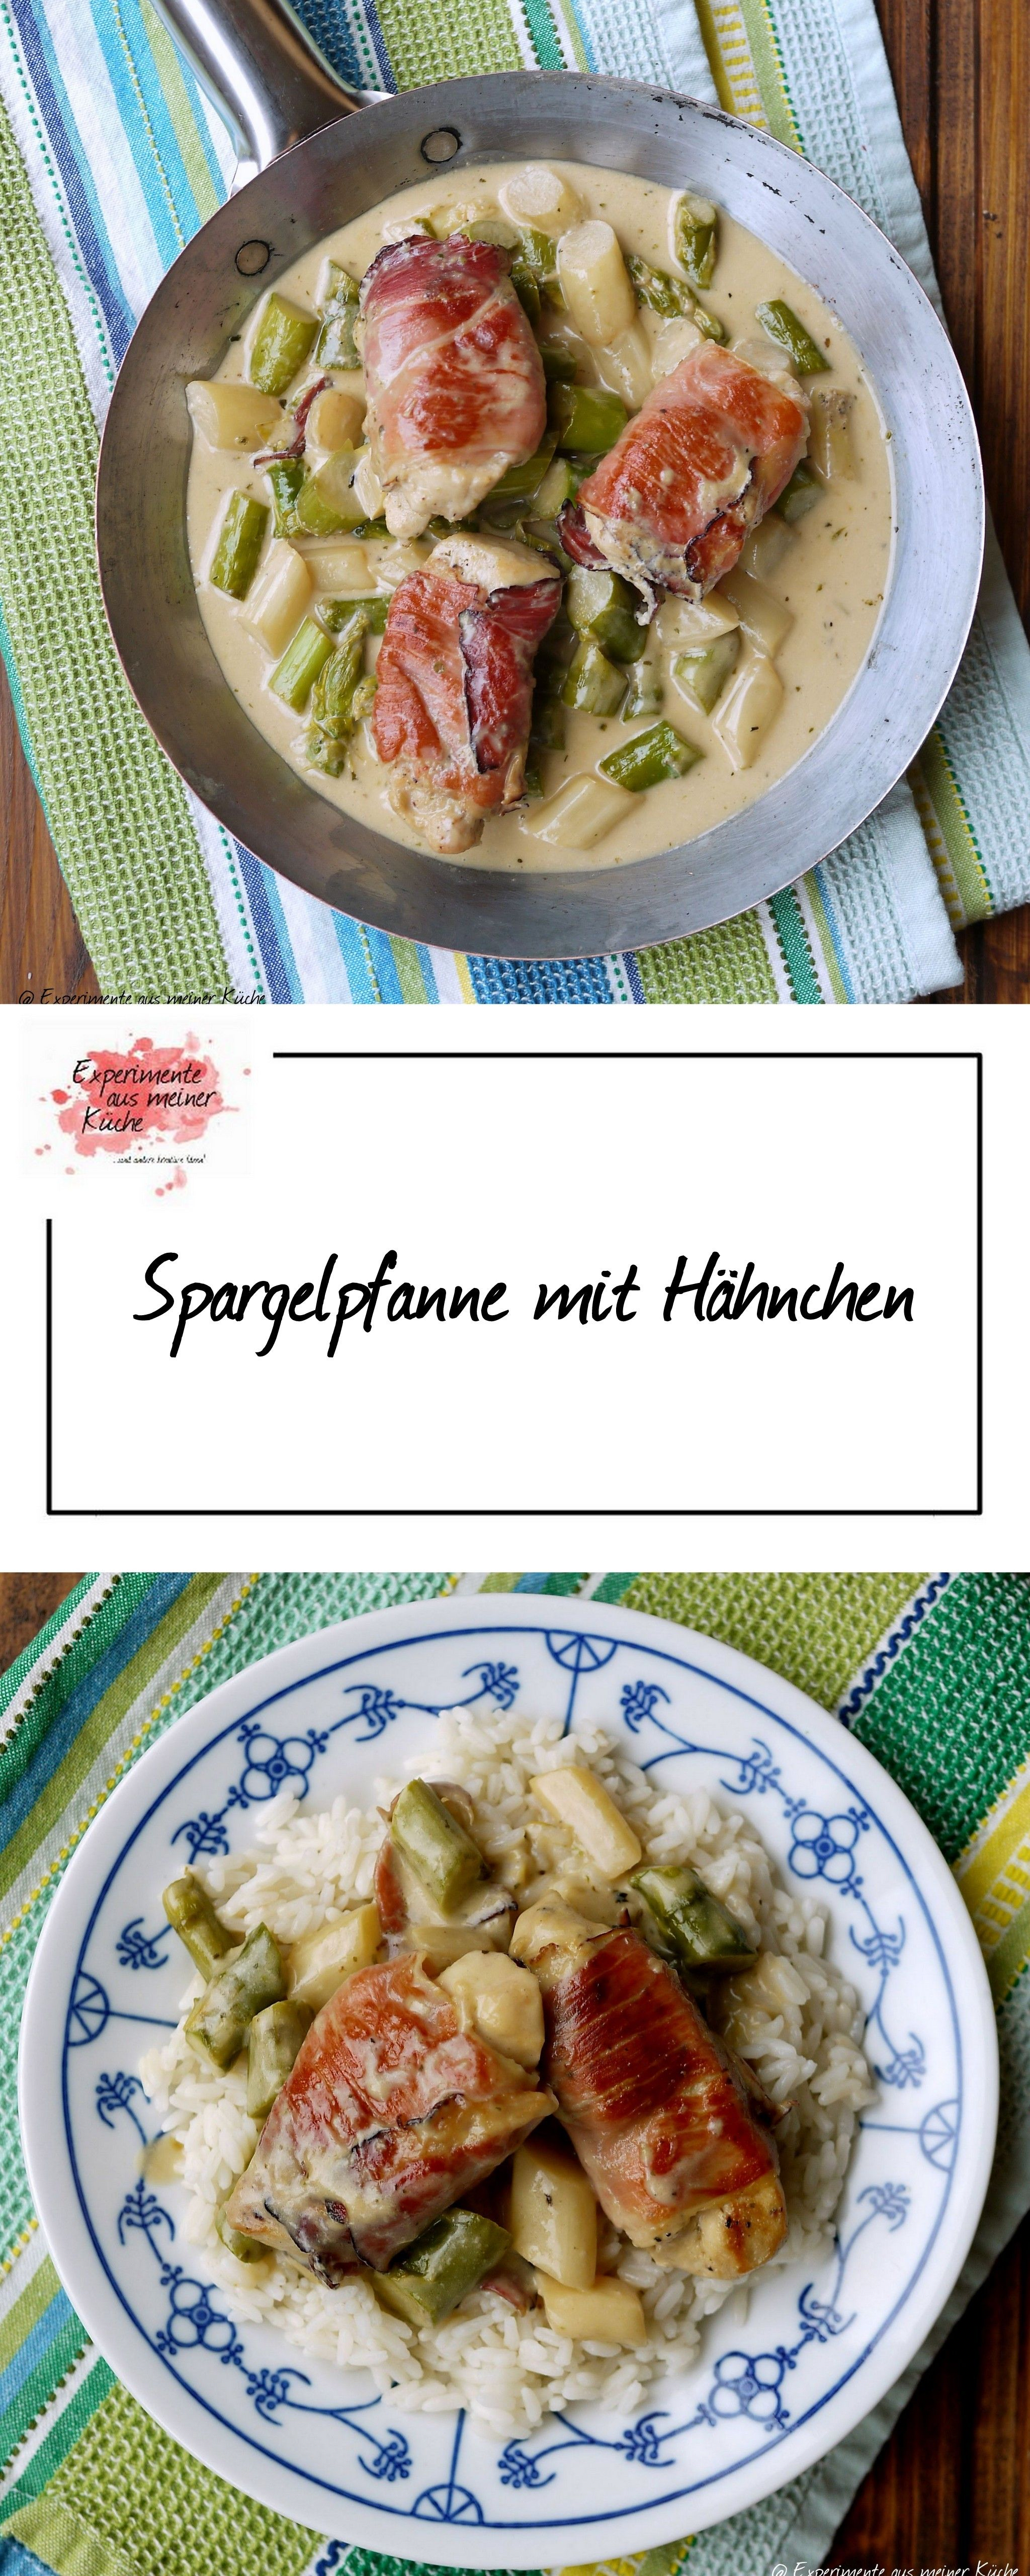 Spargelpfanne mit Hähnchen | Low carb, Food and Fitness foods